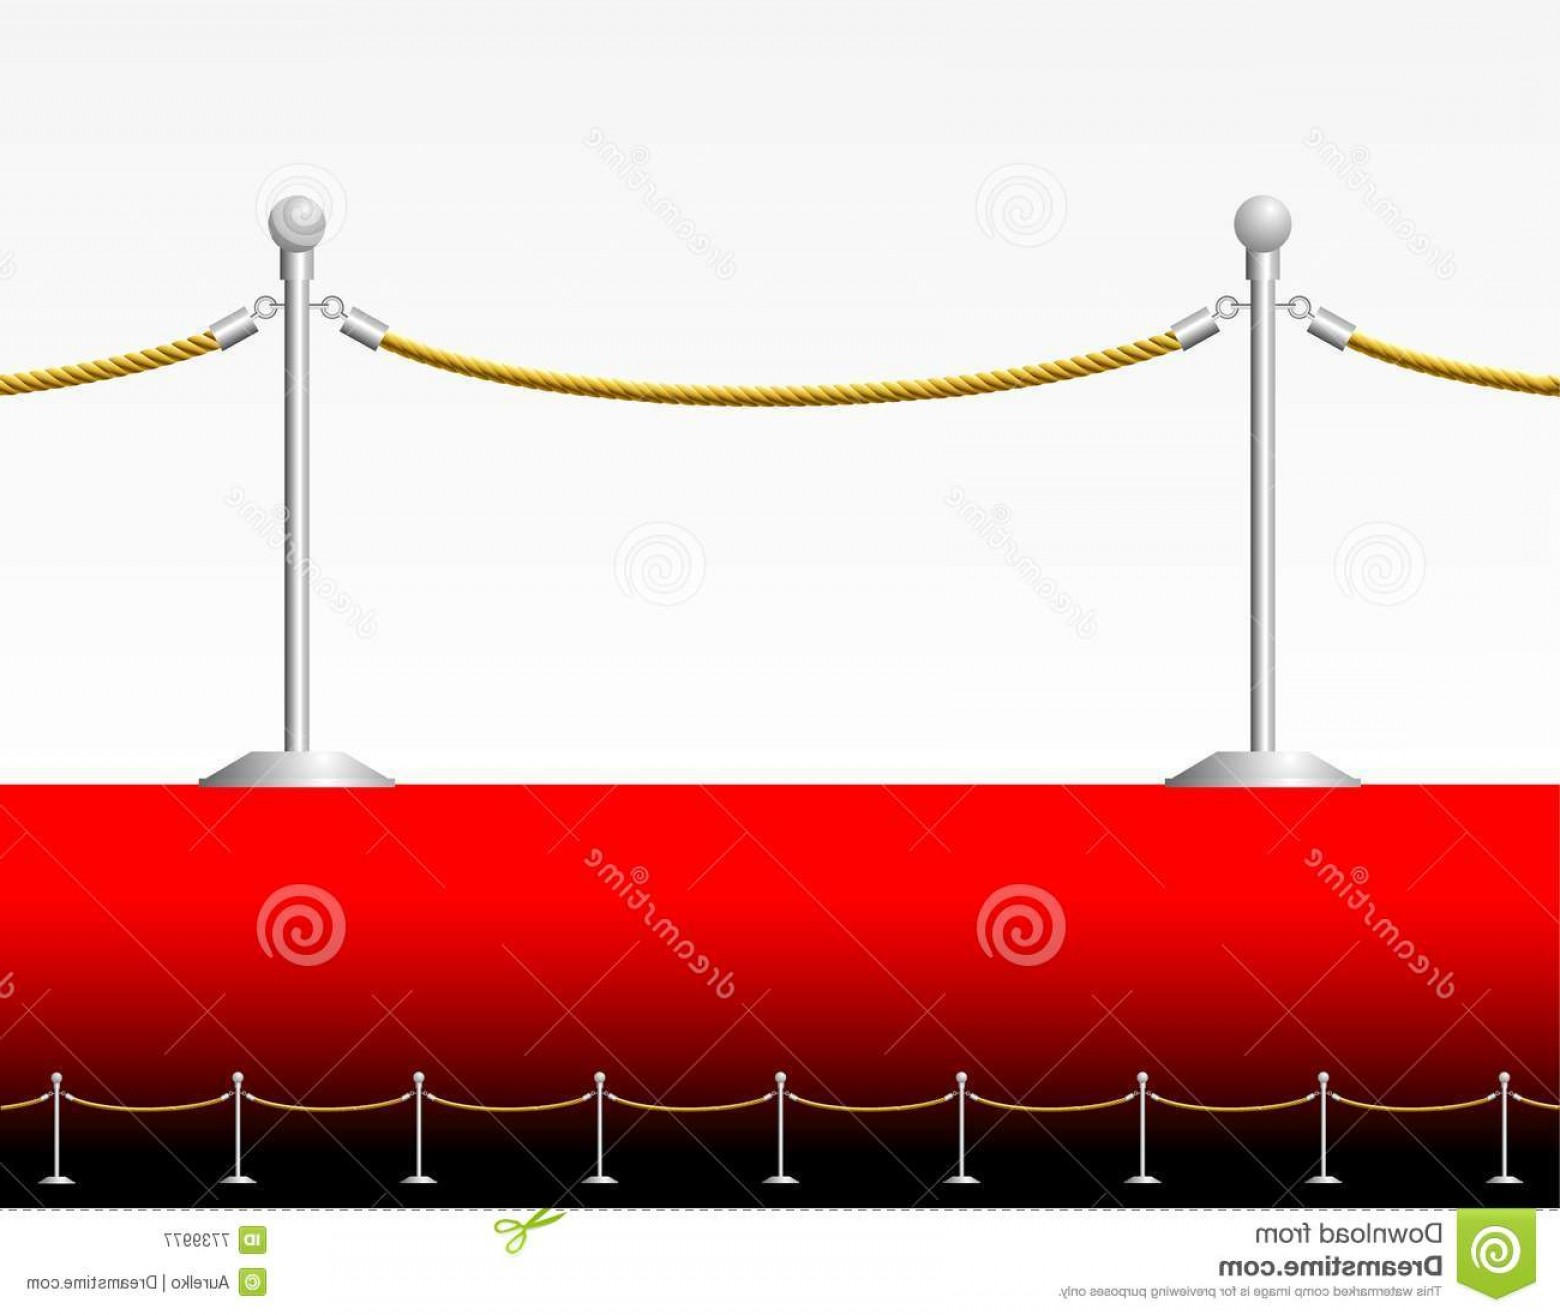 Carpet Vector 2D: Royalty Free Stock Photography Red Carpet Fence Image